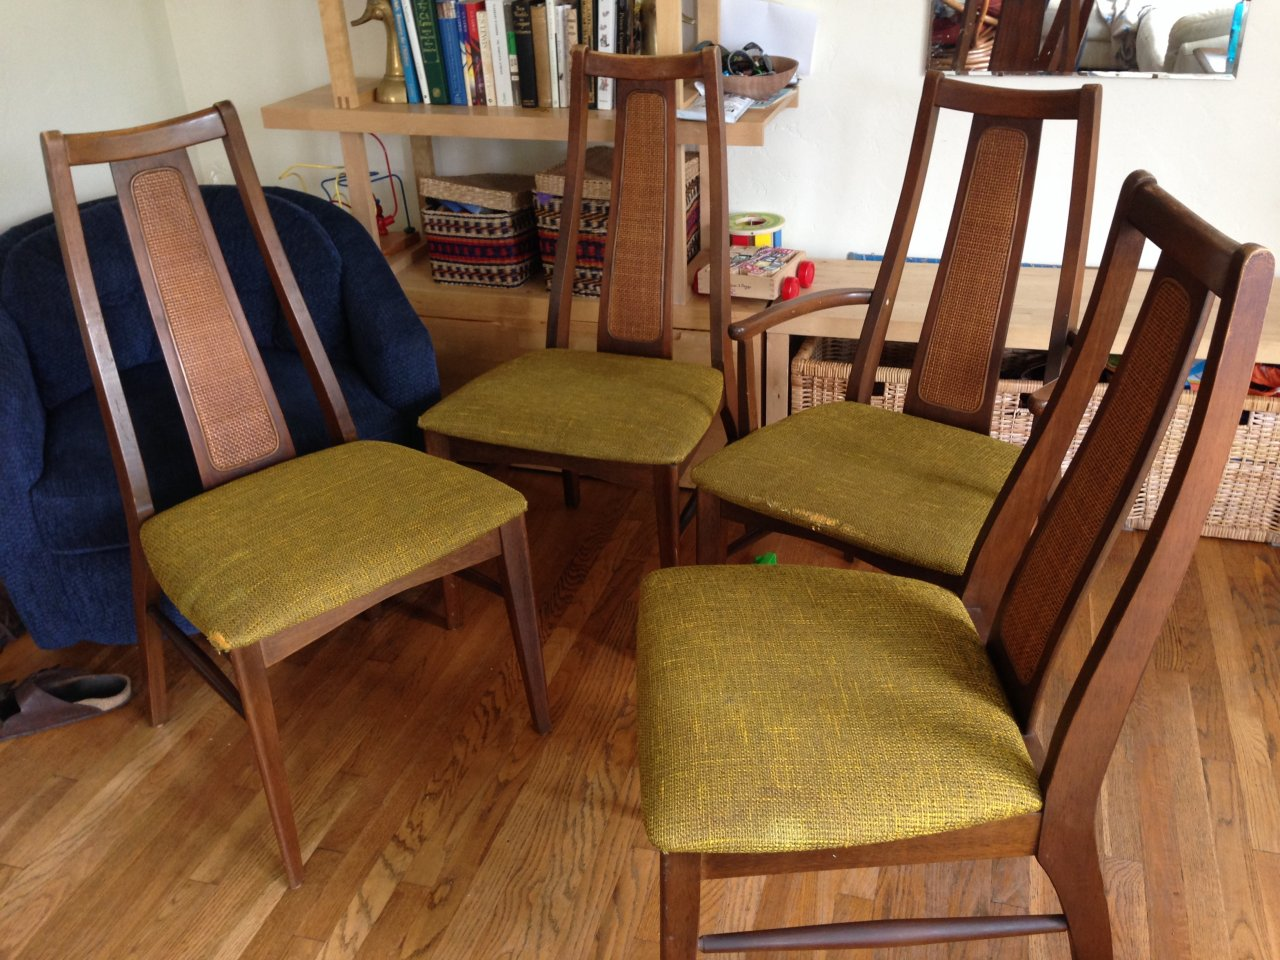 Wonderful The Chairs And Table Legs Are Solid Wood, But The Table Top Is Particle  Board With A Veneer. The Chairs Have A Cool Rattan Inlay. Any Info Is  Appreciated  ...